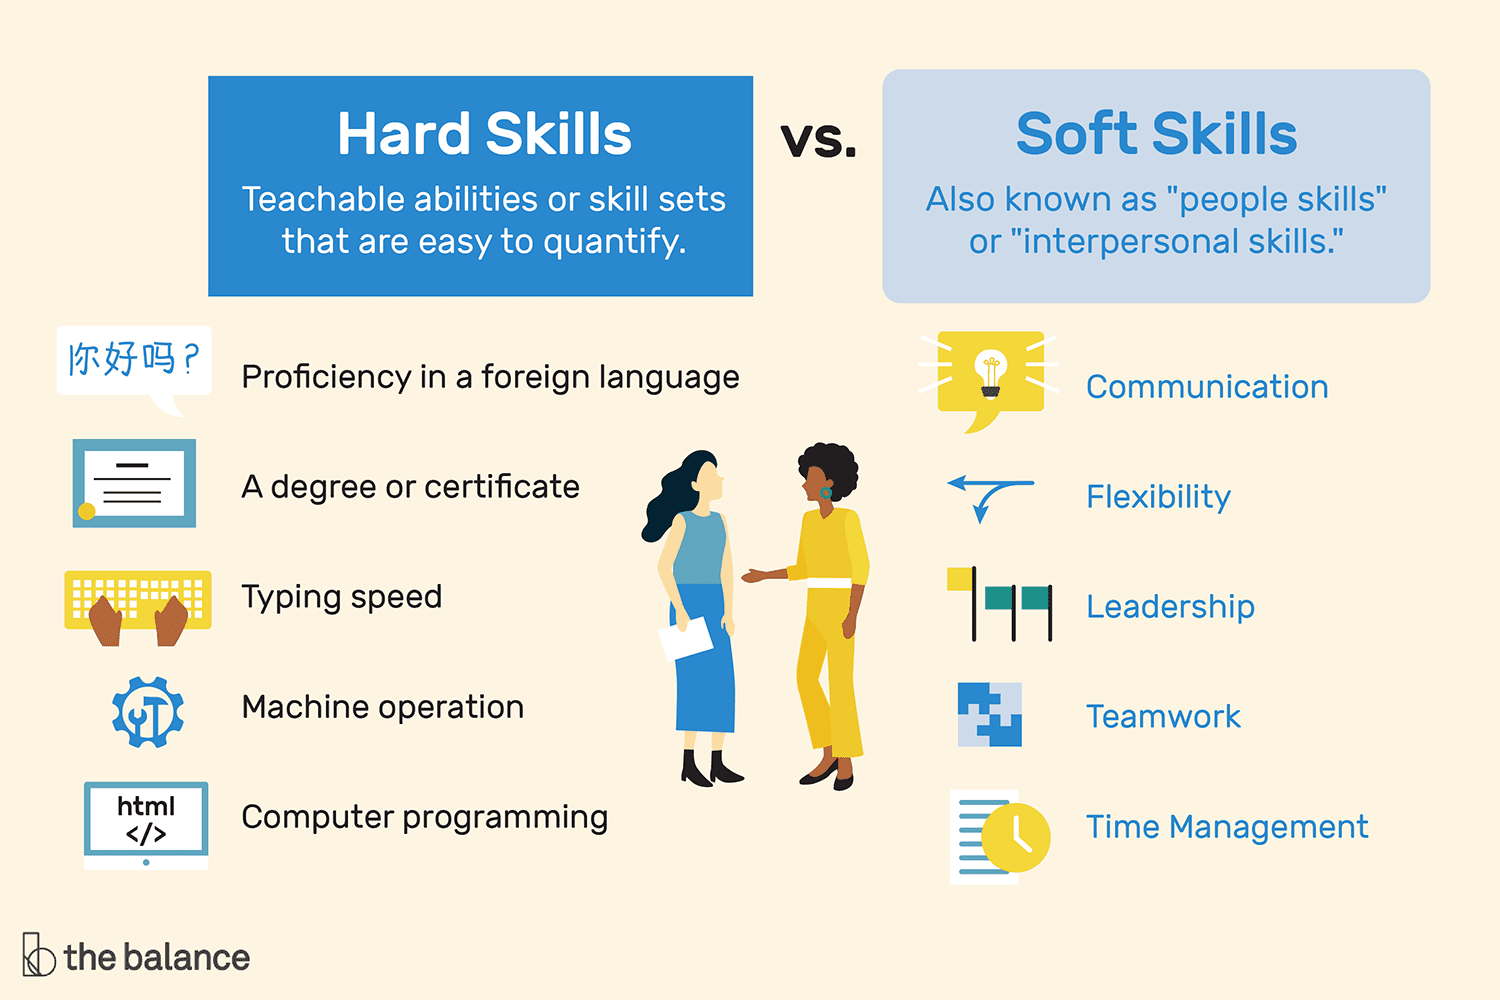 Hard Skills Vs Soft Skills What's The Difference?